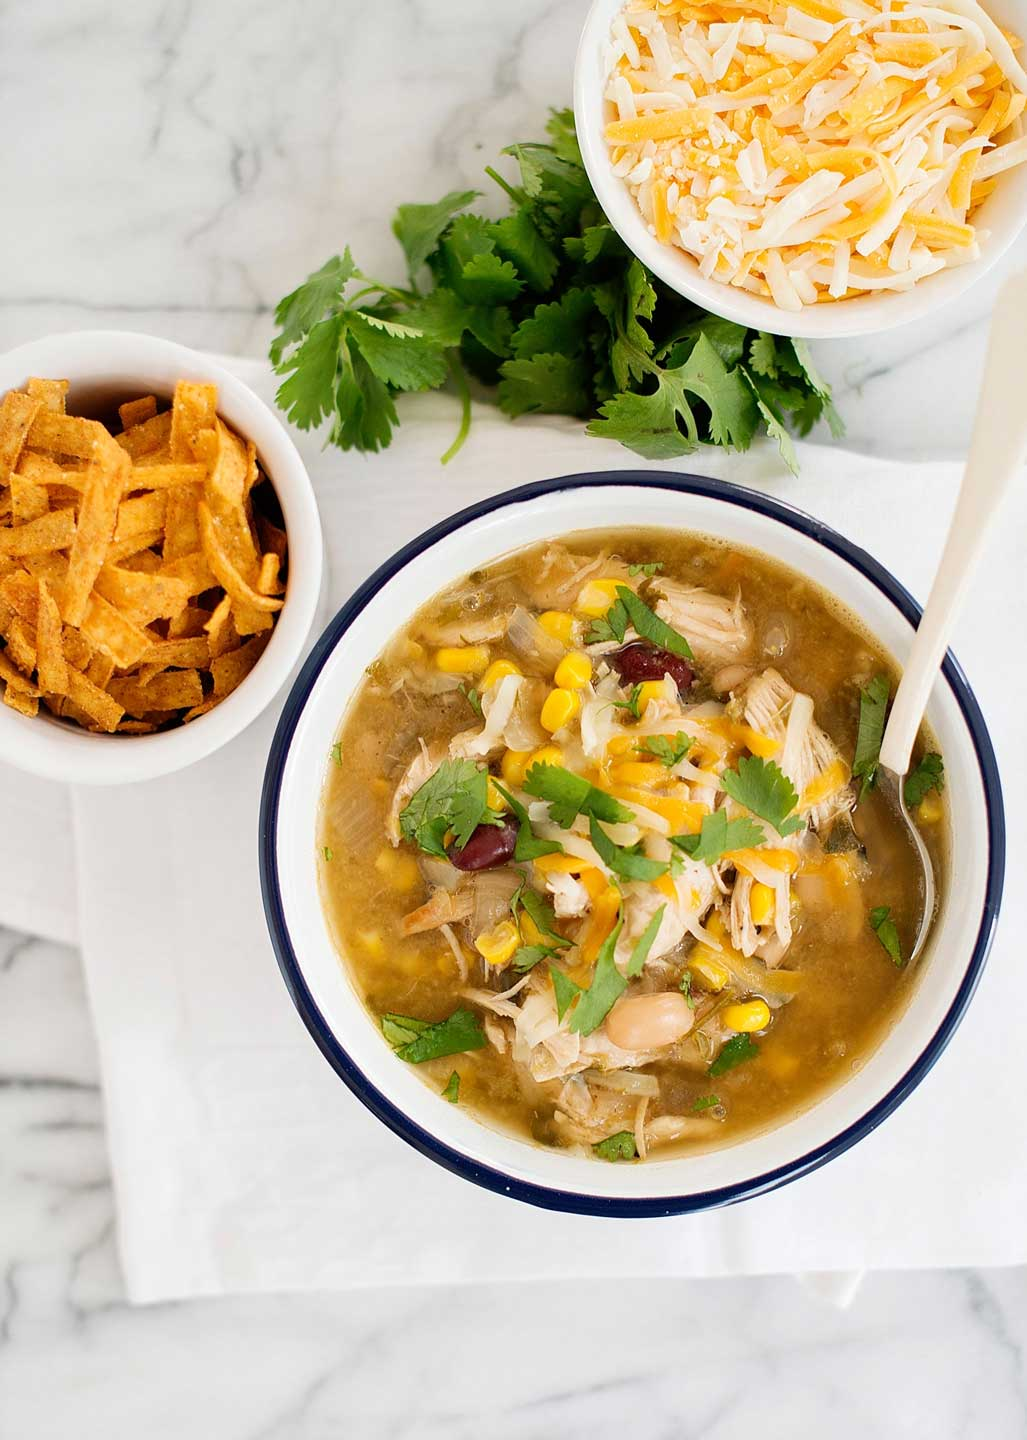 A great idea for a healthy bowl of chili - Instant Pot Green Chicken Chili from Rebecca at Simple As That – just one of 17 recipes for Instant Pot chili that we've hand-picked to be healthy, quick and easy!